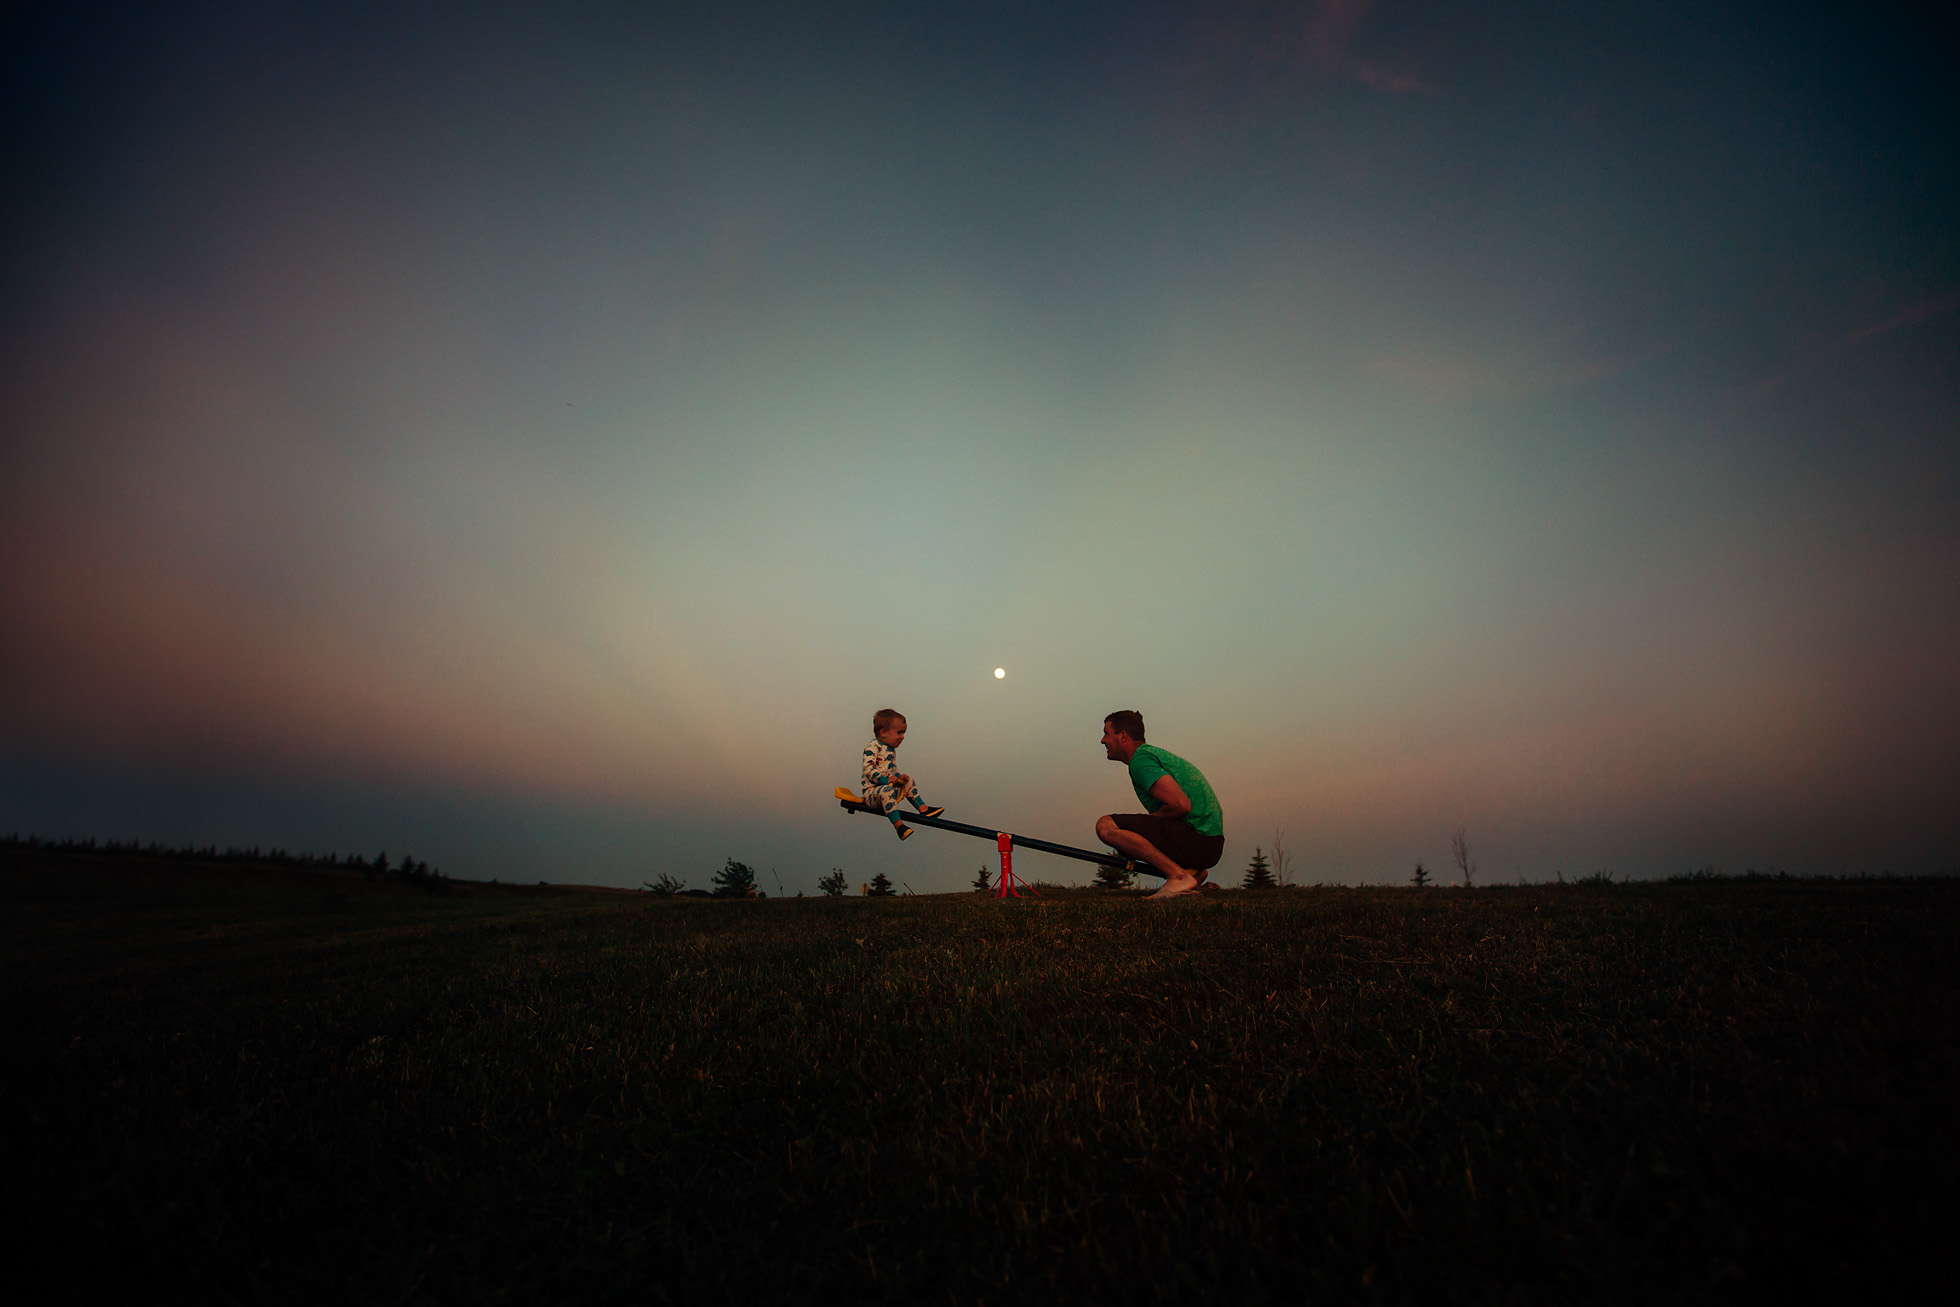 Child, Documentary, Everyday, Family, Landscape, Lifestyle, Low Light by Amber Walder with Canon EF 16-35mm f/2.8L II USM